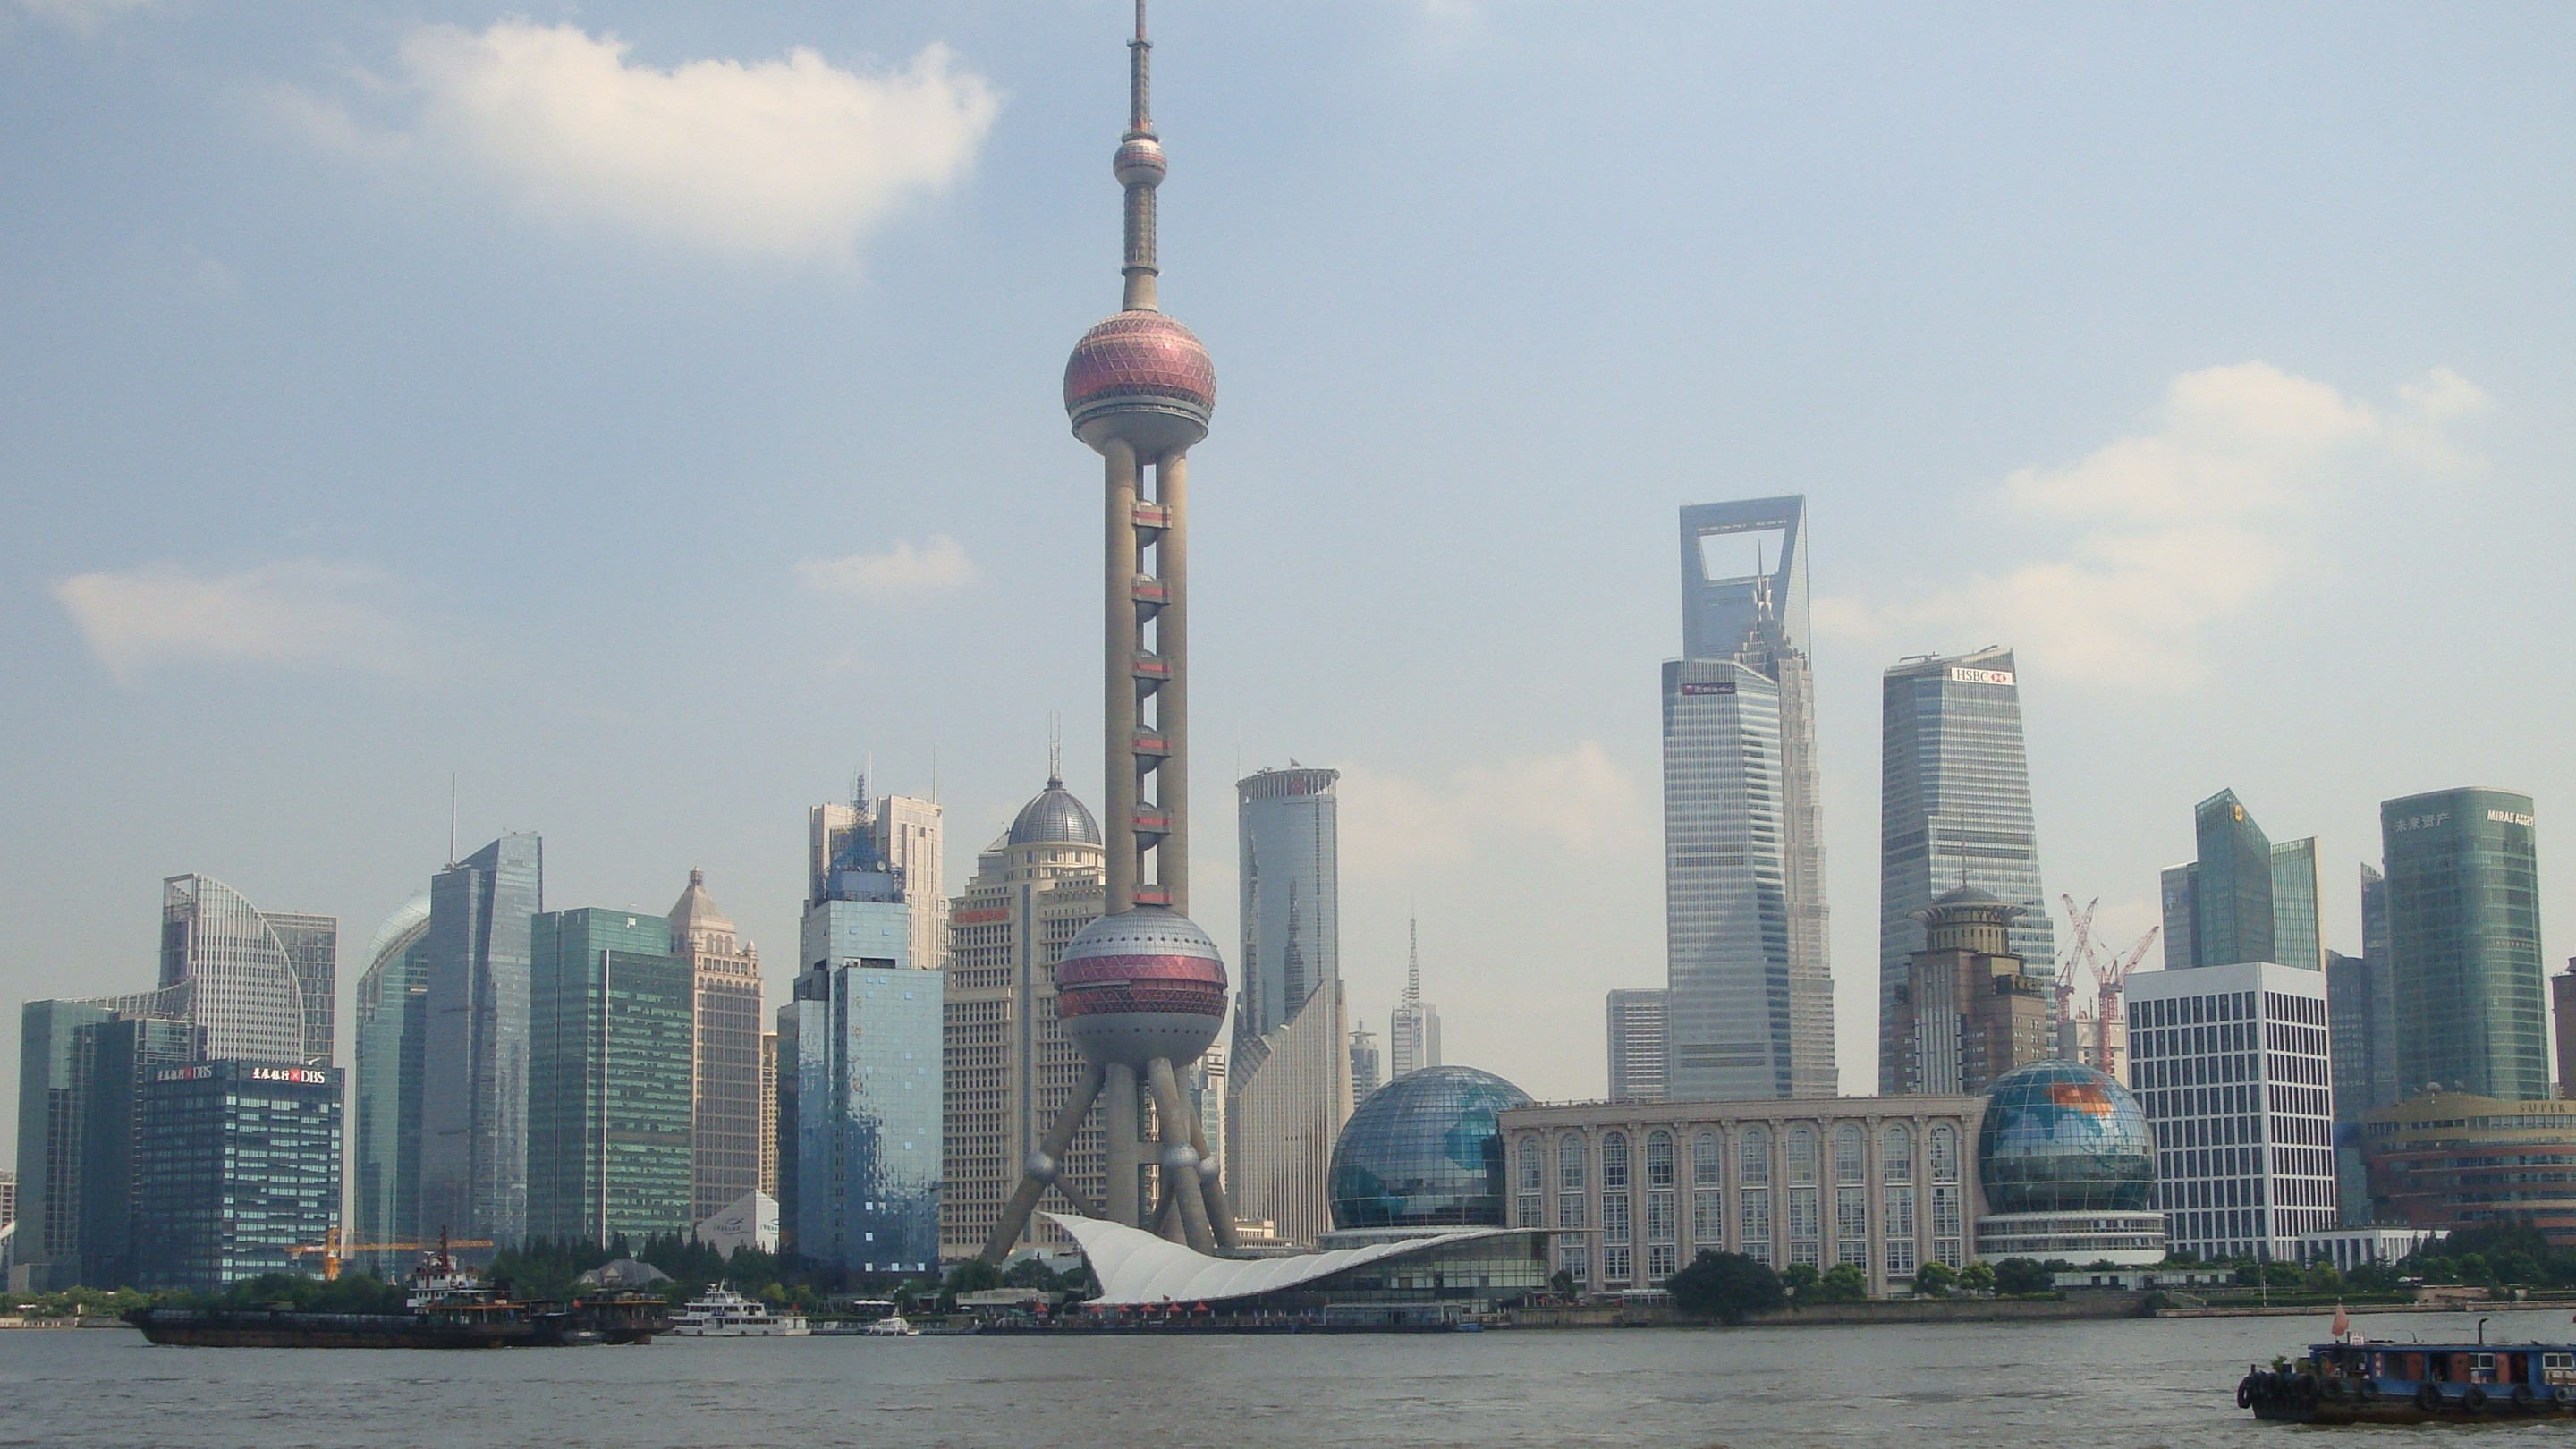 shanghai skyline wallpapers pictures - photo #27